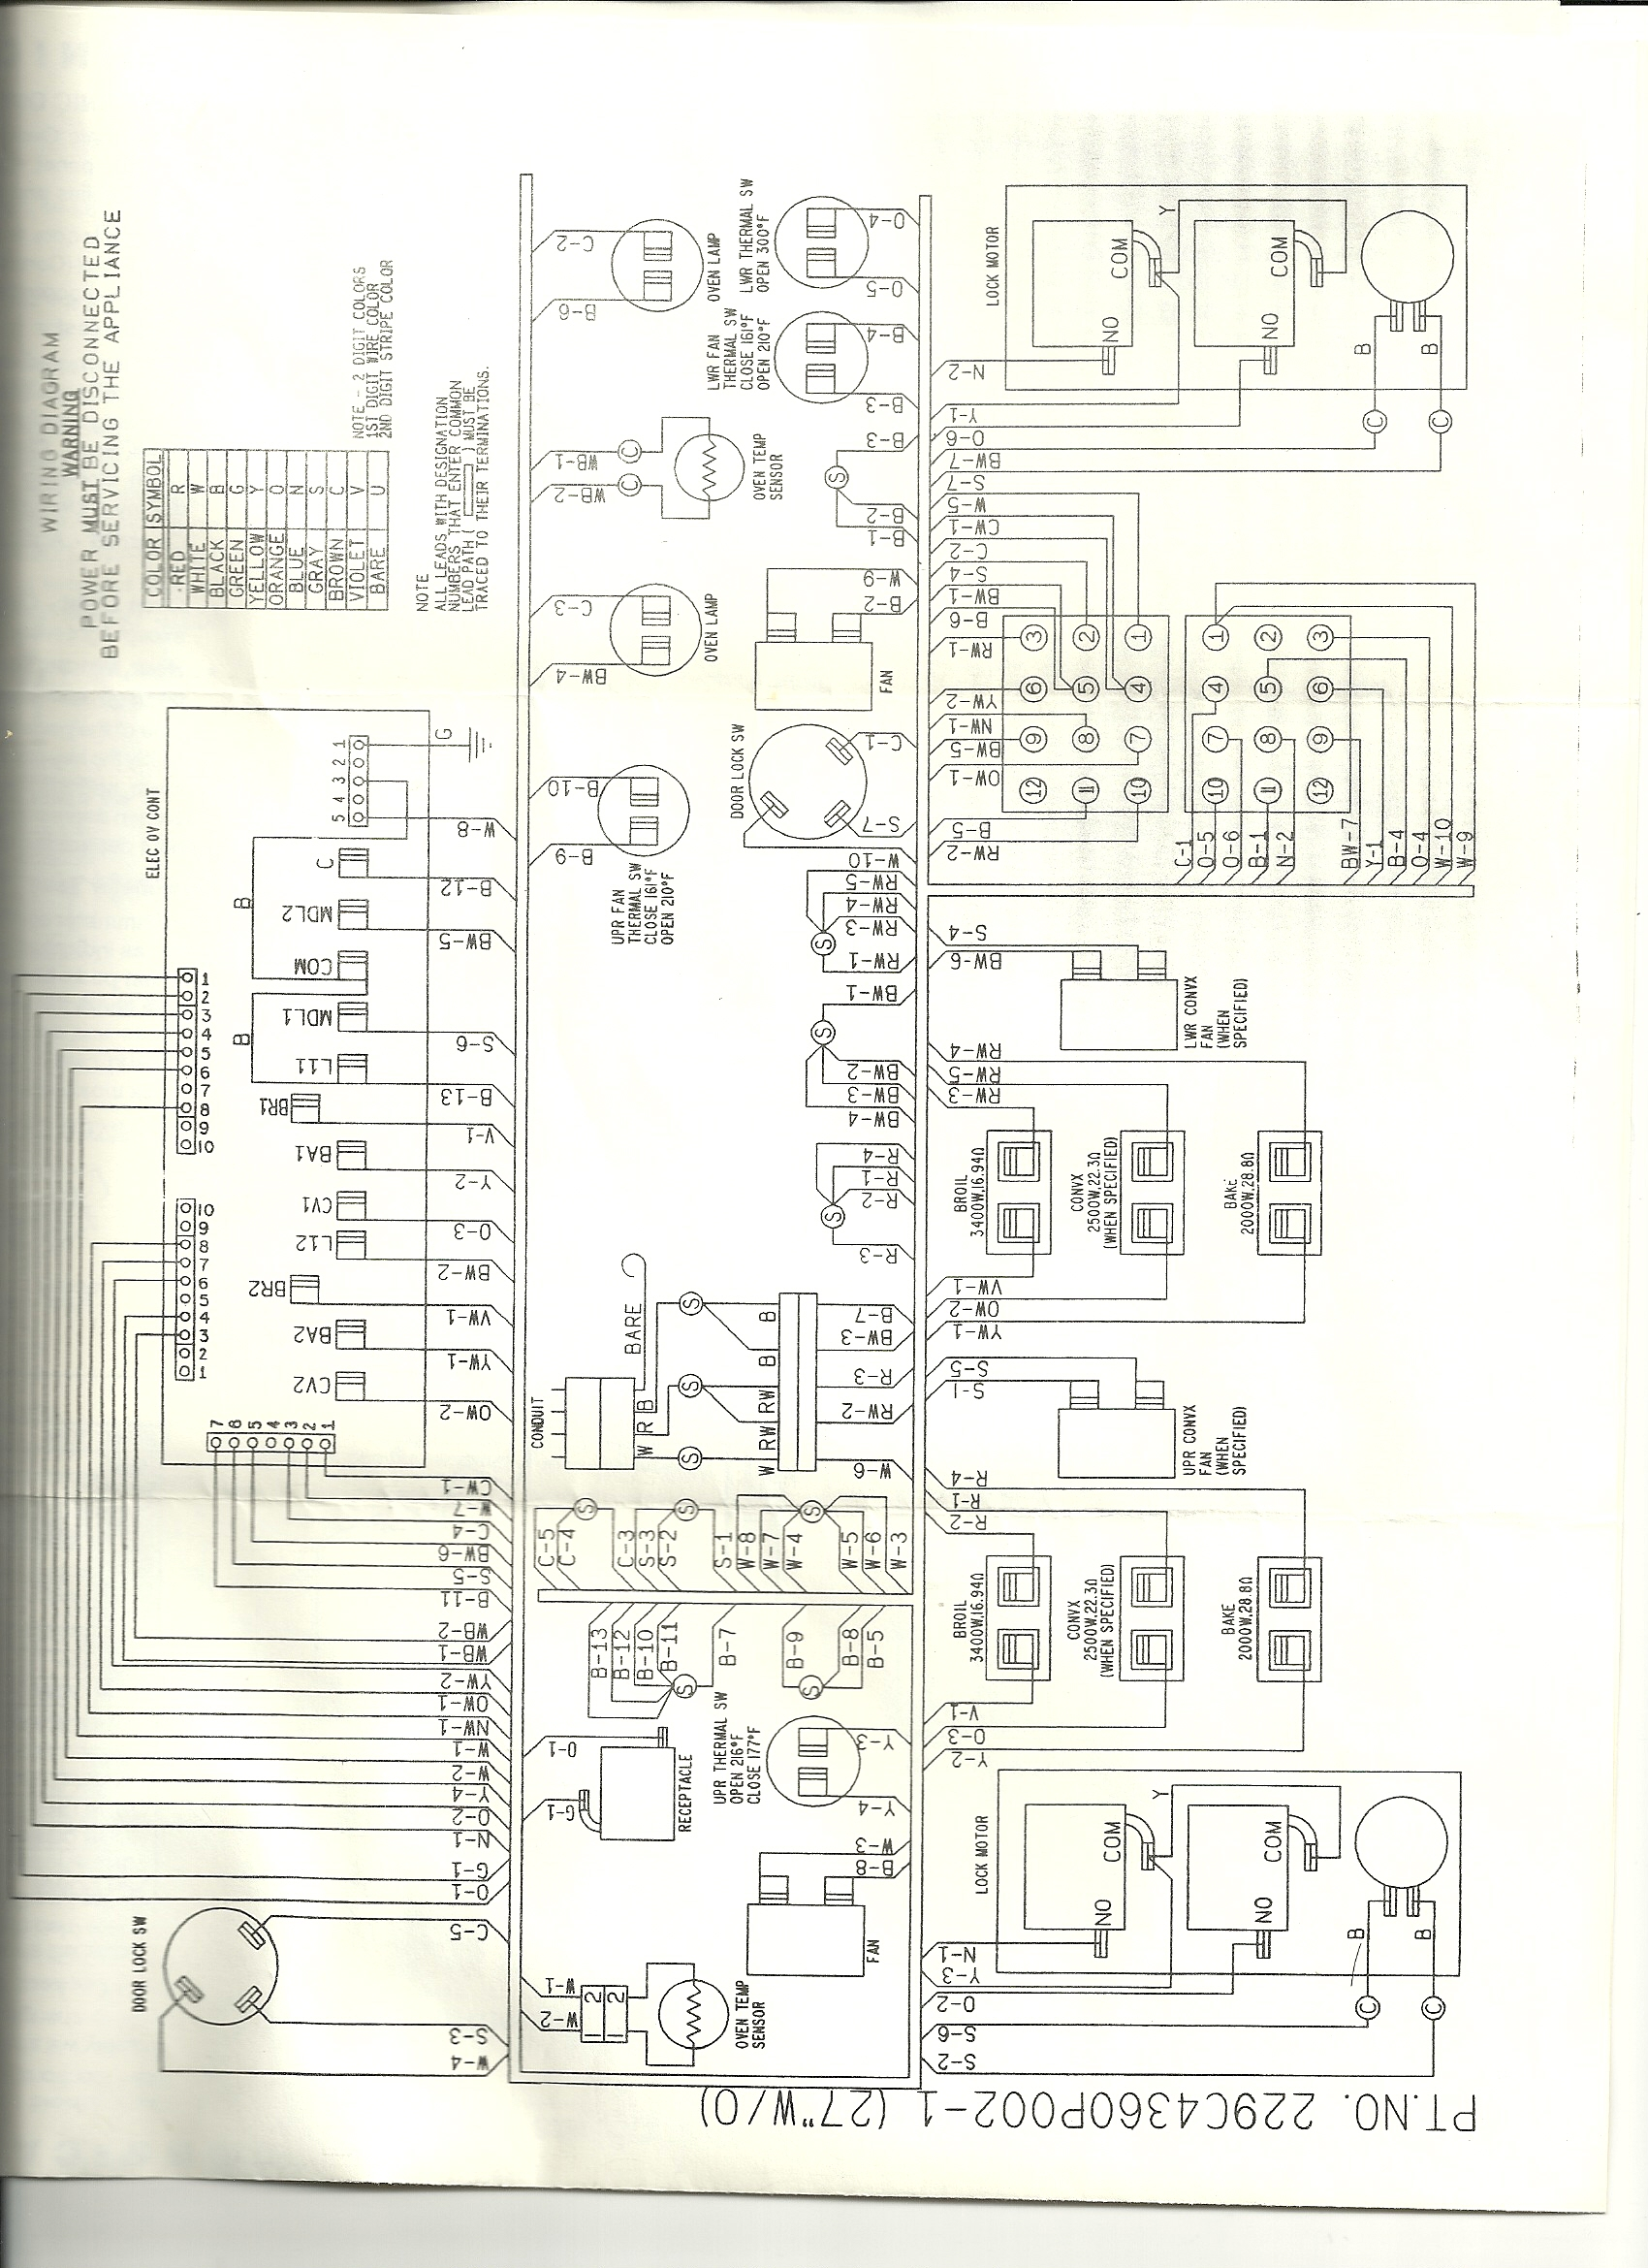 2012 09 13 005224 circuitdiagram ge range0001 jpg ge stove wiring diagram ge image wiring diagram ge wiring diagrams ge wiring diagrams on ge